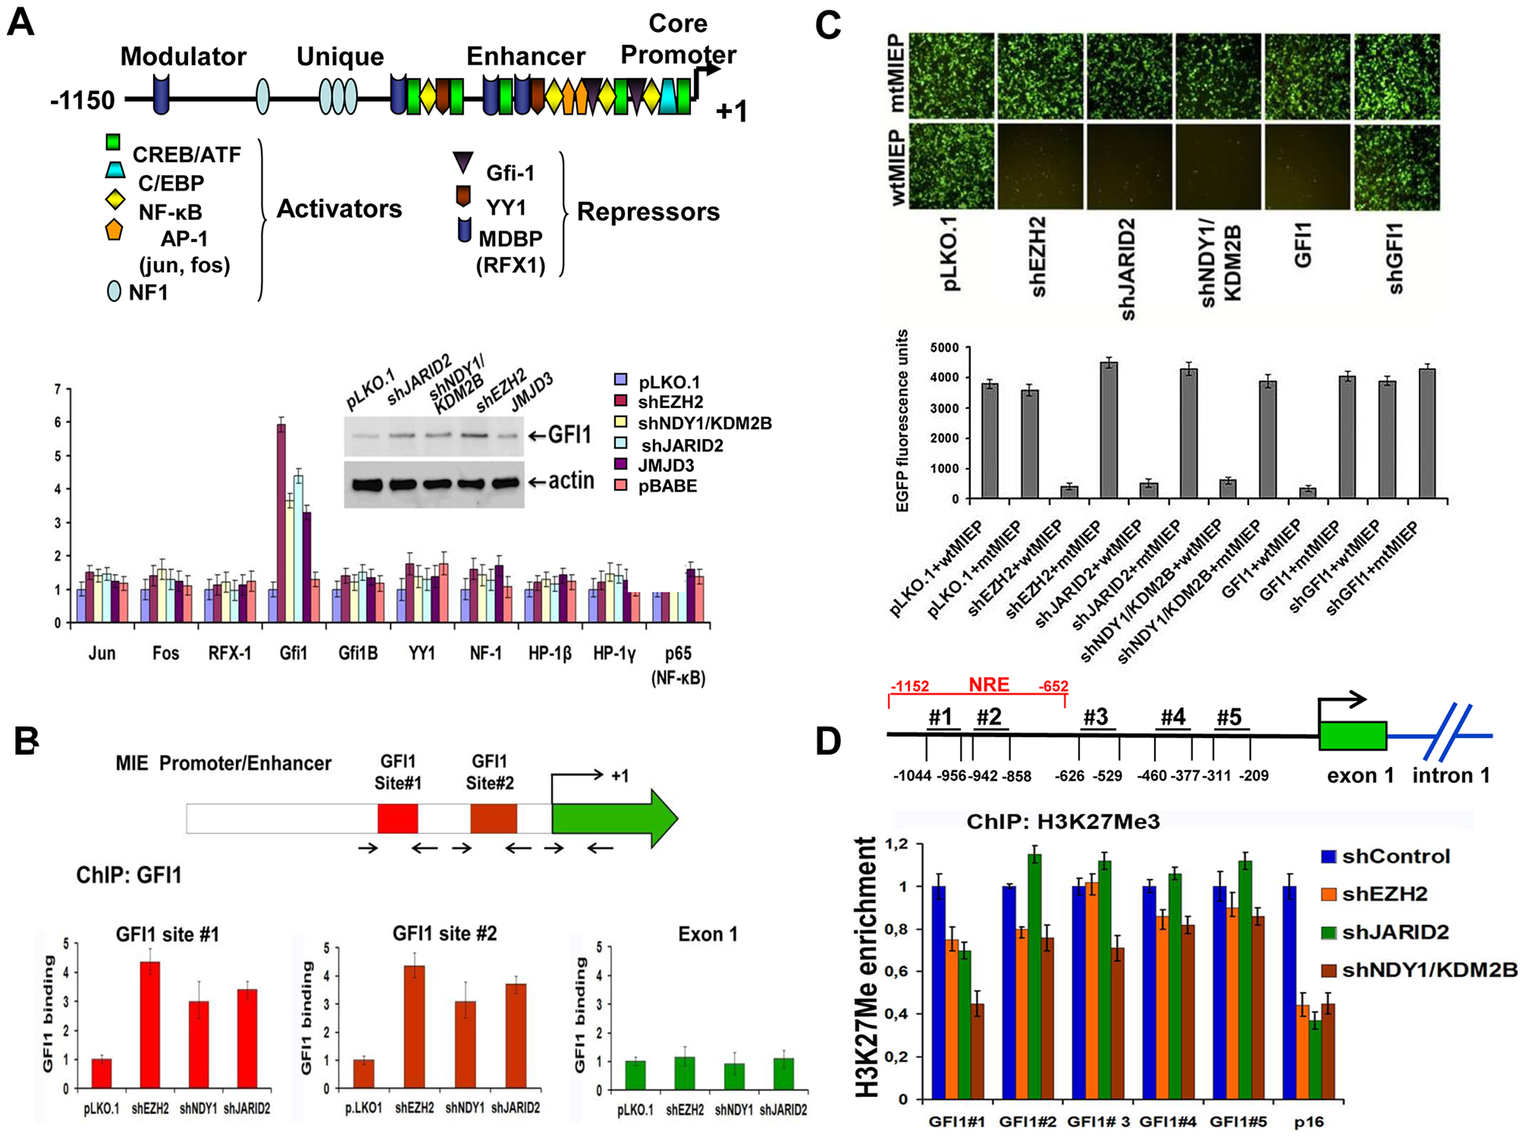 NDY1/KDM2B, EZH2 JARID2 and JMJD3 control the expression of GFI1, a direct repressor of the HCMV MIEP, by regulating histone H3K27 tri-methylation in the GFI1 promoter.